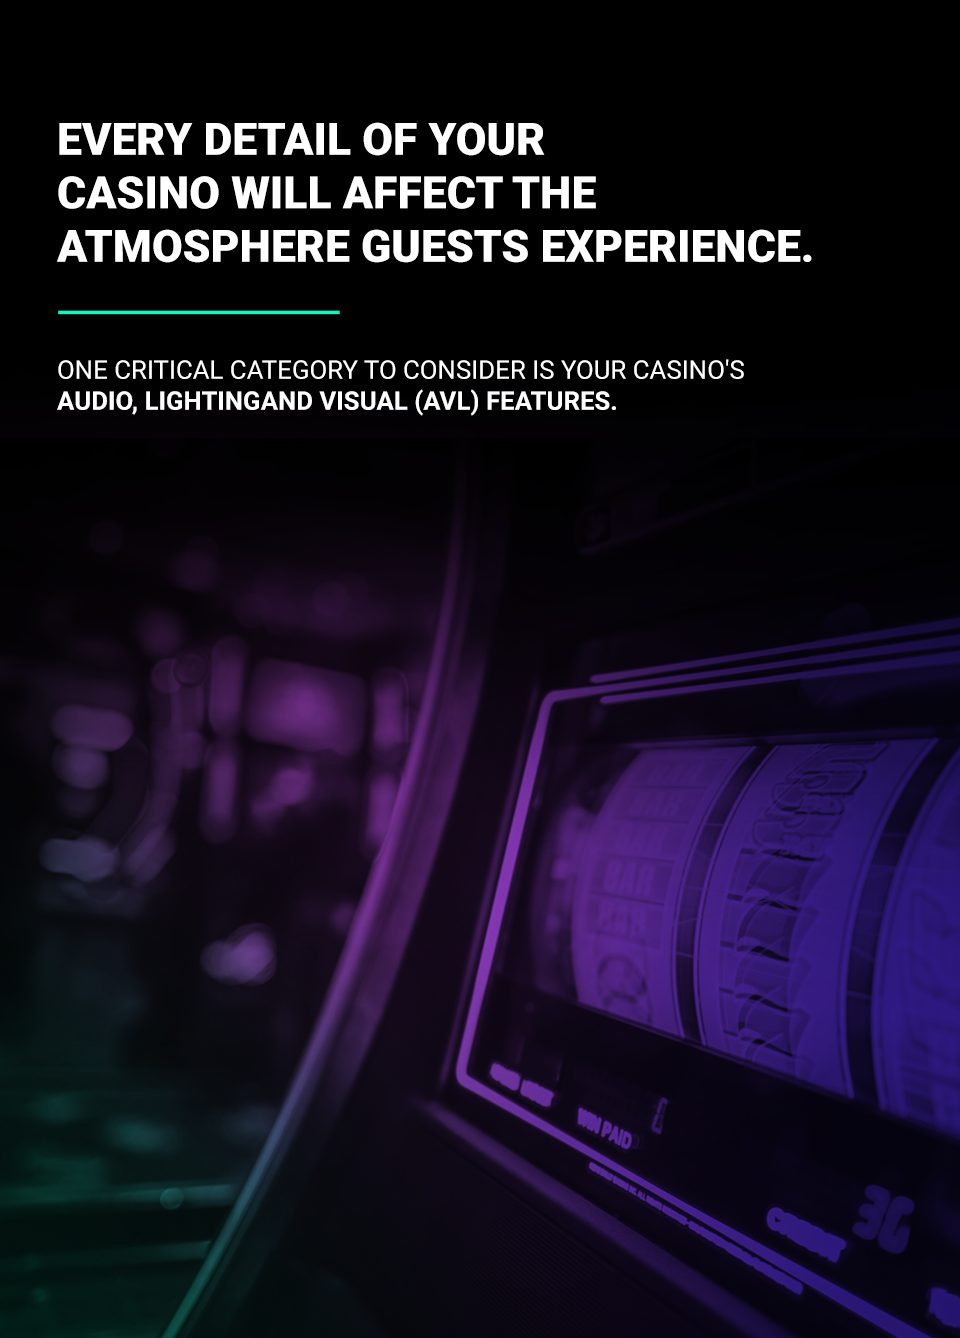 Every detail of your casino will affect the atmosphere guests experience